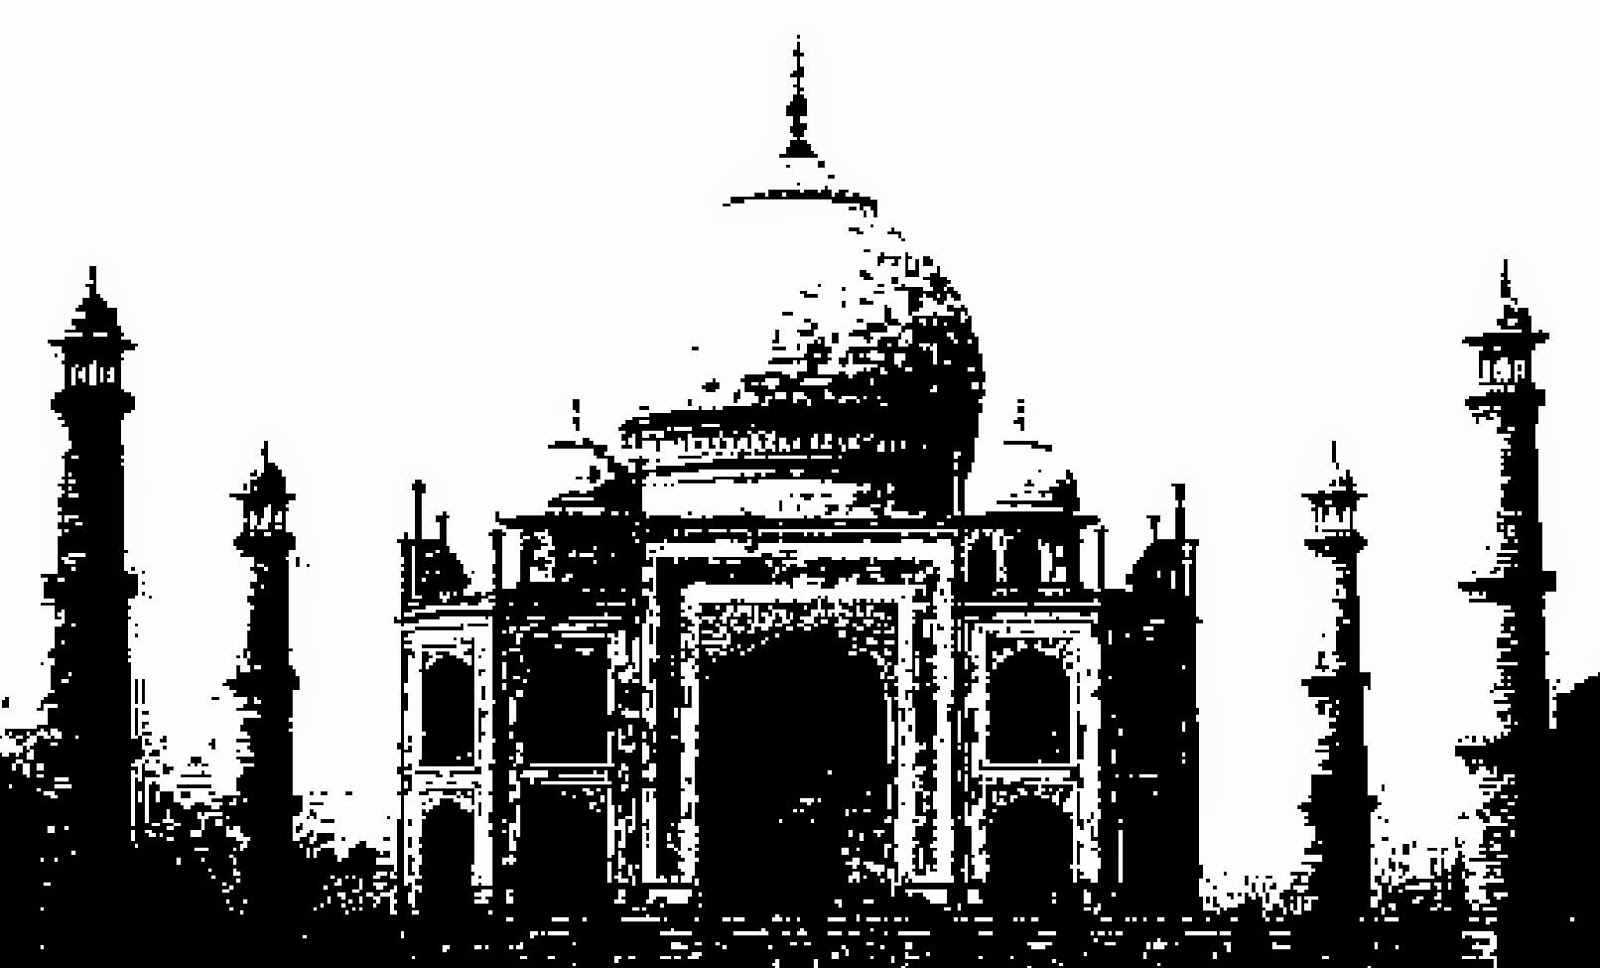 monuments of india drawing clip arts and images of india monuments of india line drawing india monuments of